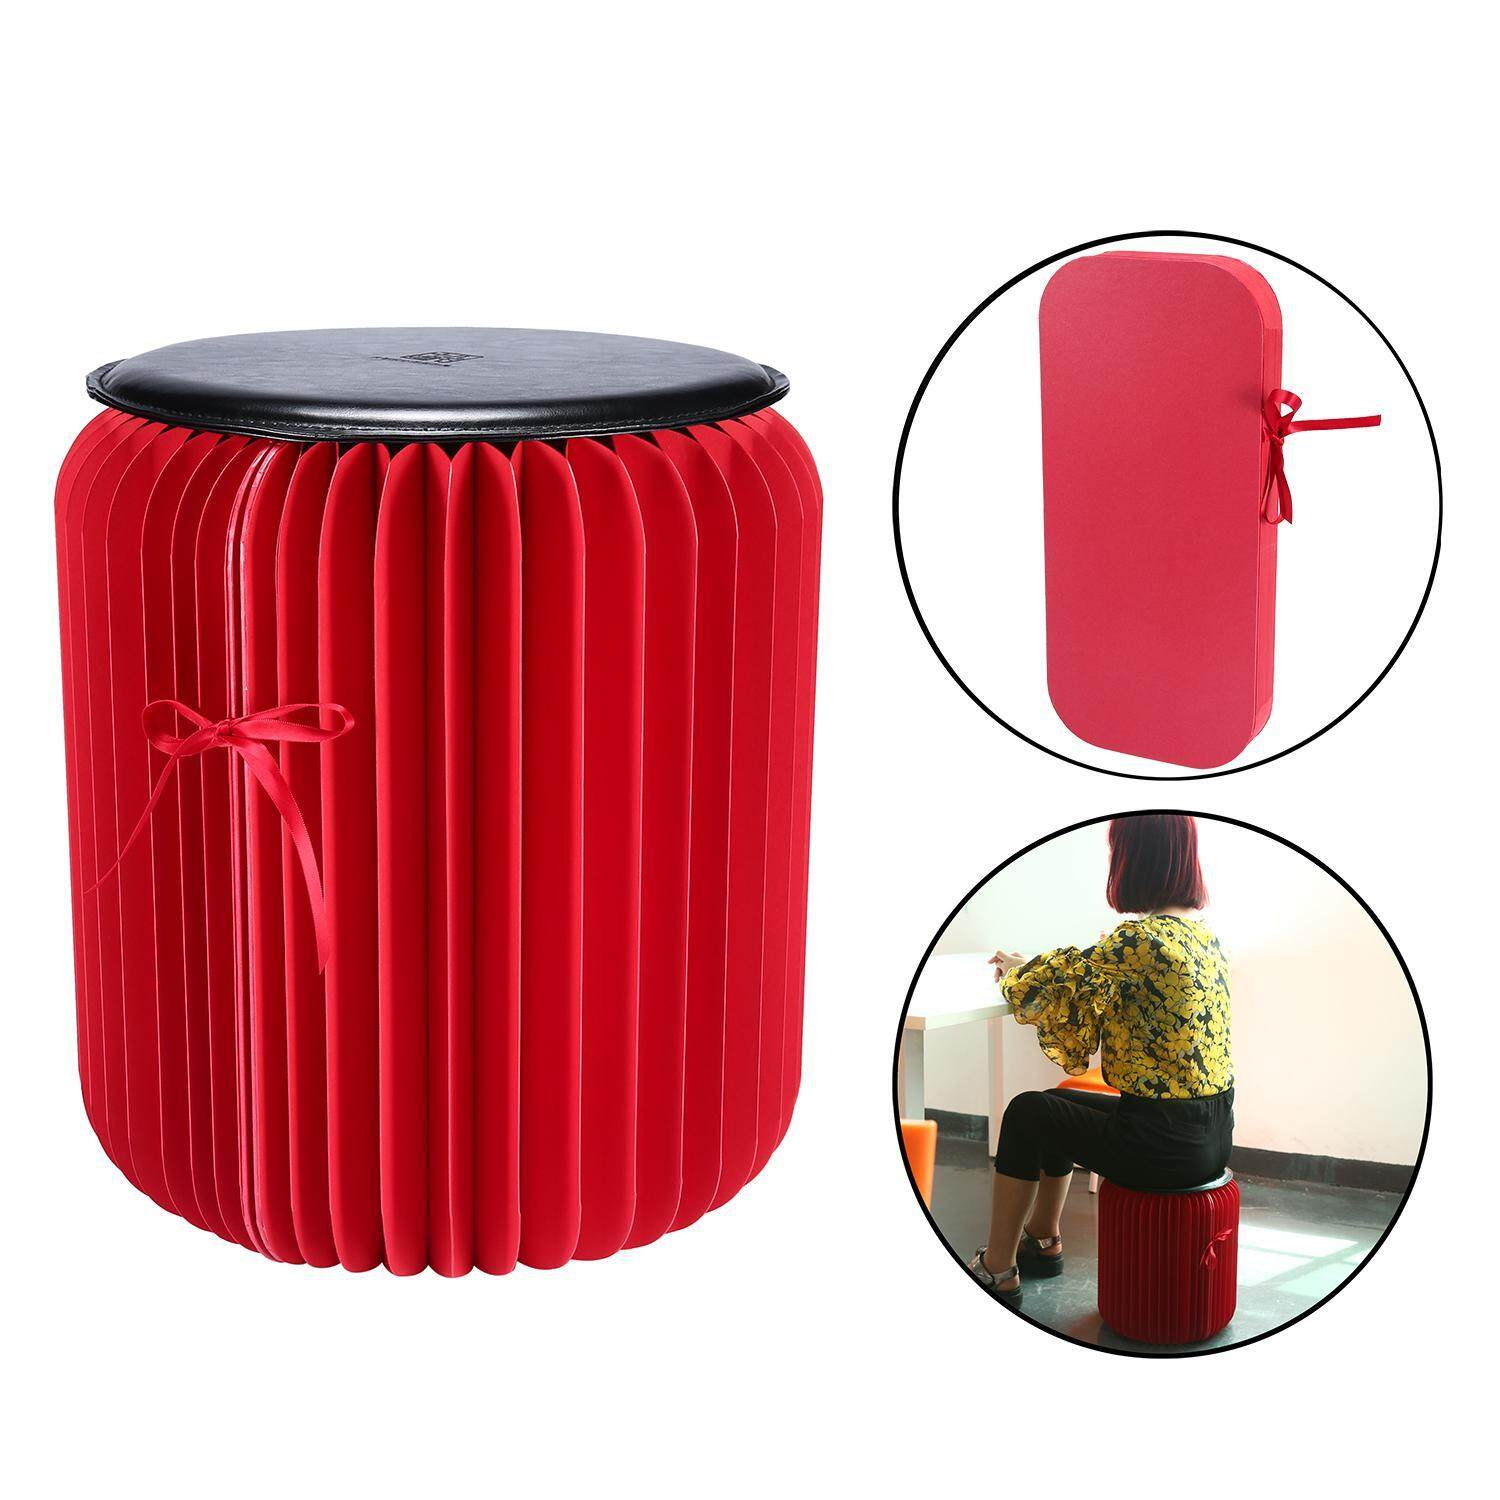 Wanxinkeji Flexible Paper Stool,Portable Home Furniture Paper Design Folding Chair With 1pcs Leather Pad,Red+Black Large Size - intl